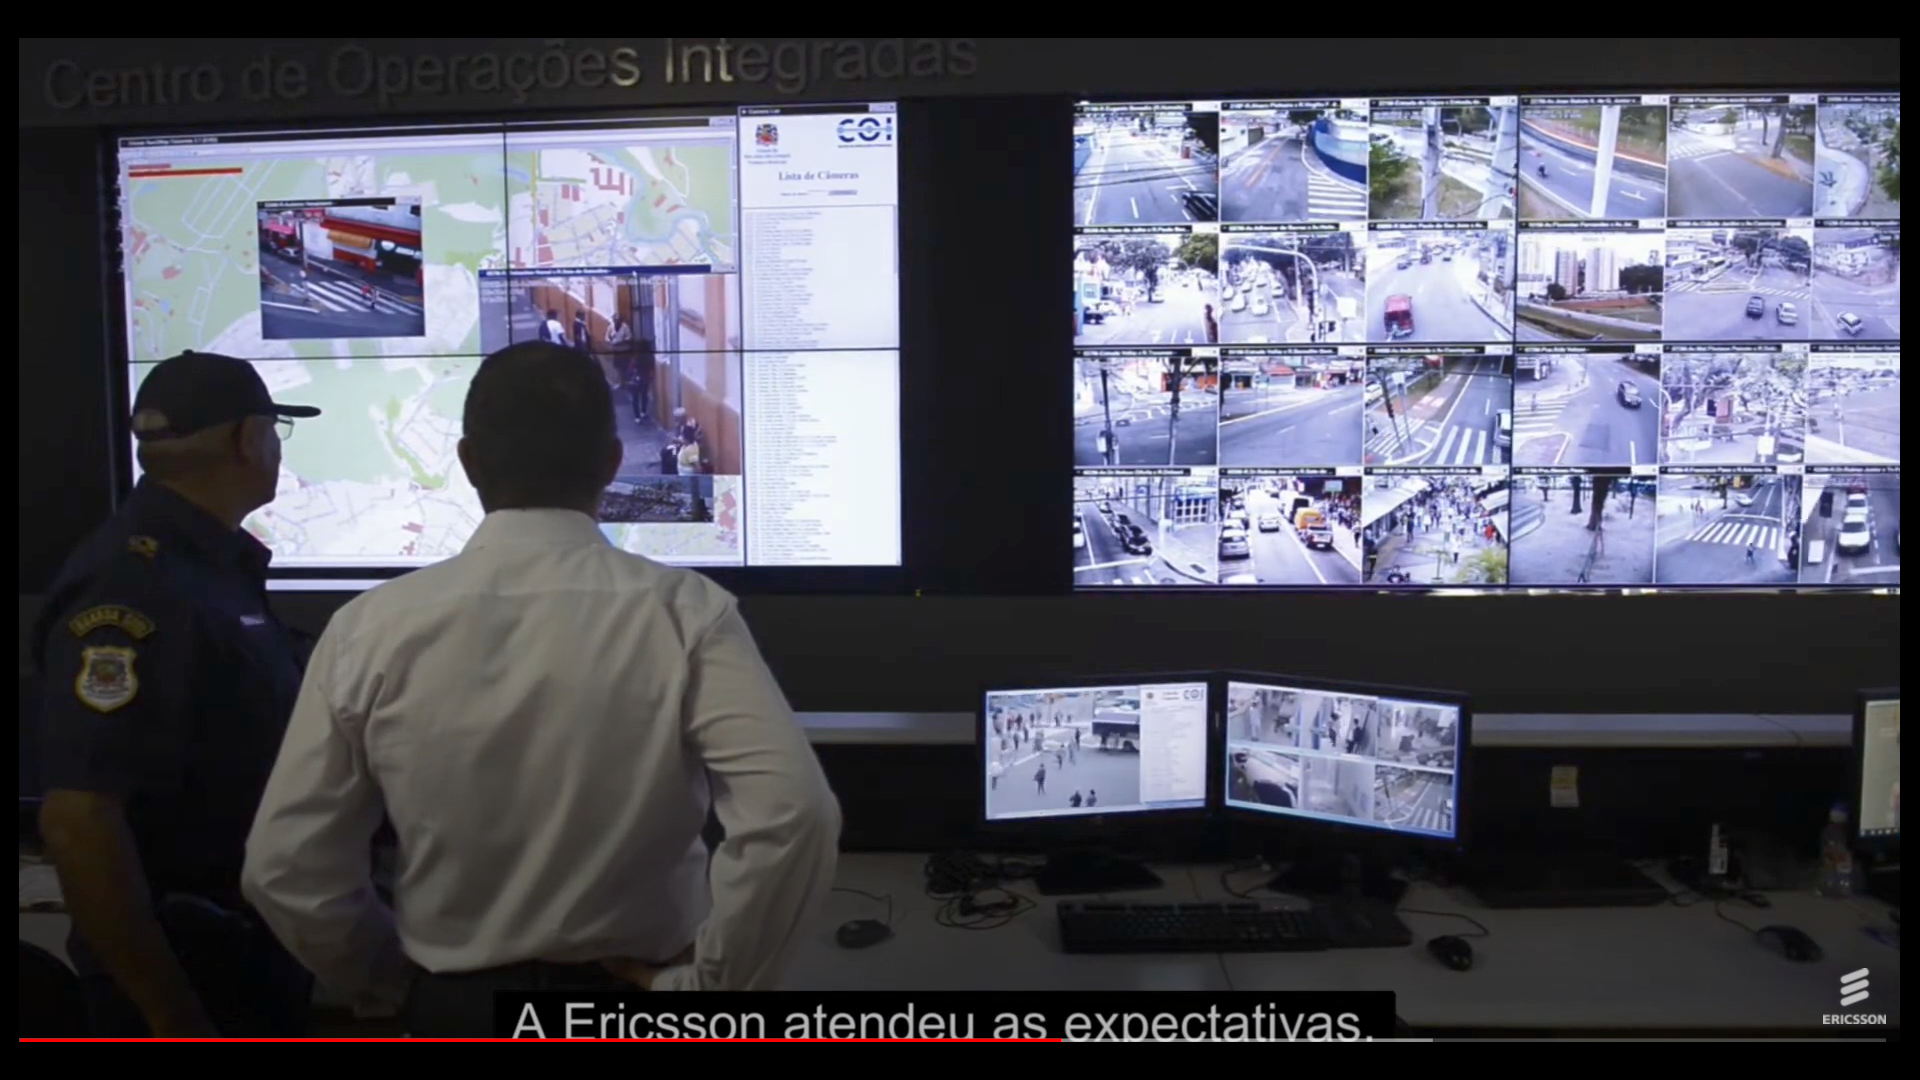 VideONet VMS with Video wall in Sao Jose dos Campos, SP, Brasil - Reissue from 2017